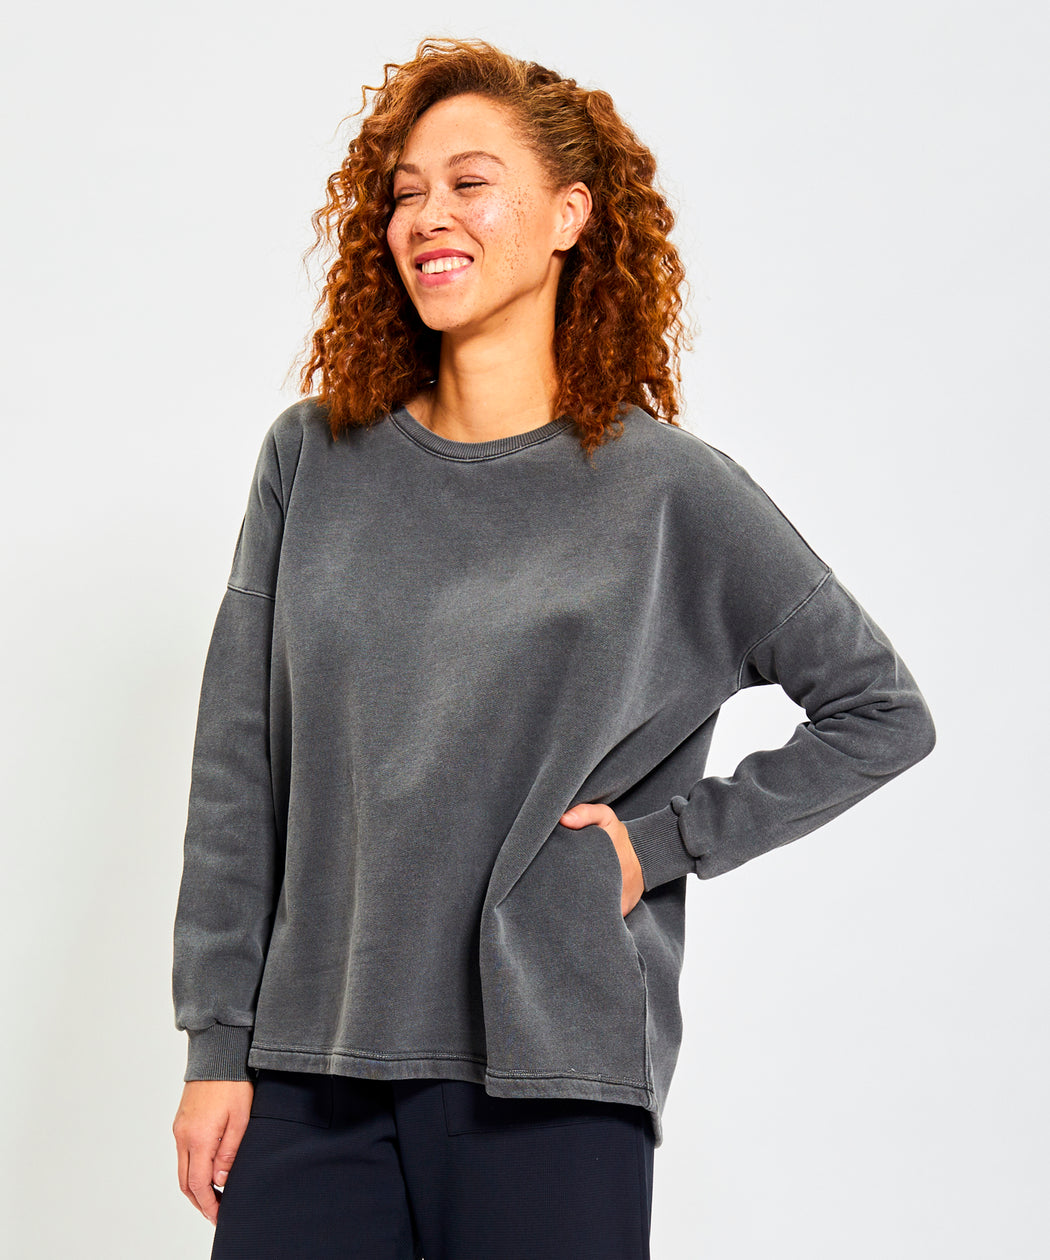 ZELDA Blanket Sweatshirt - Charcoal and Malbec